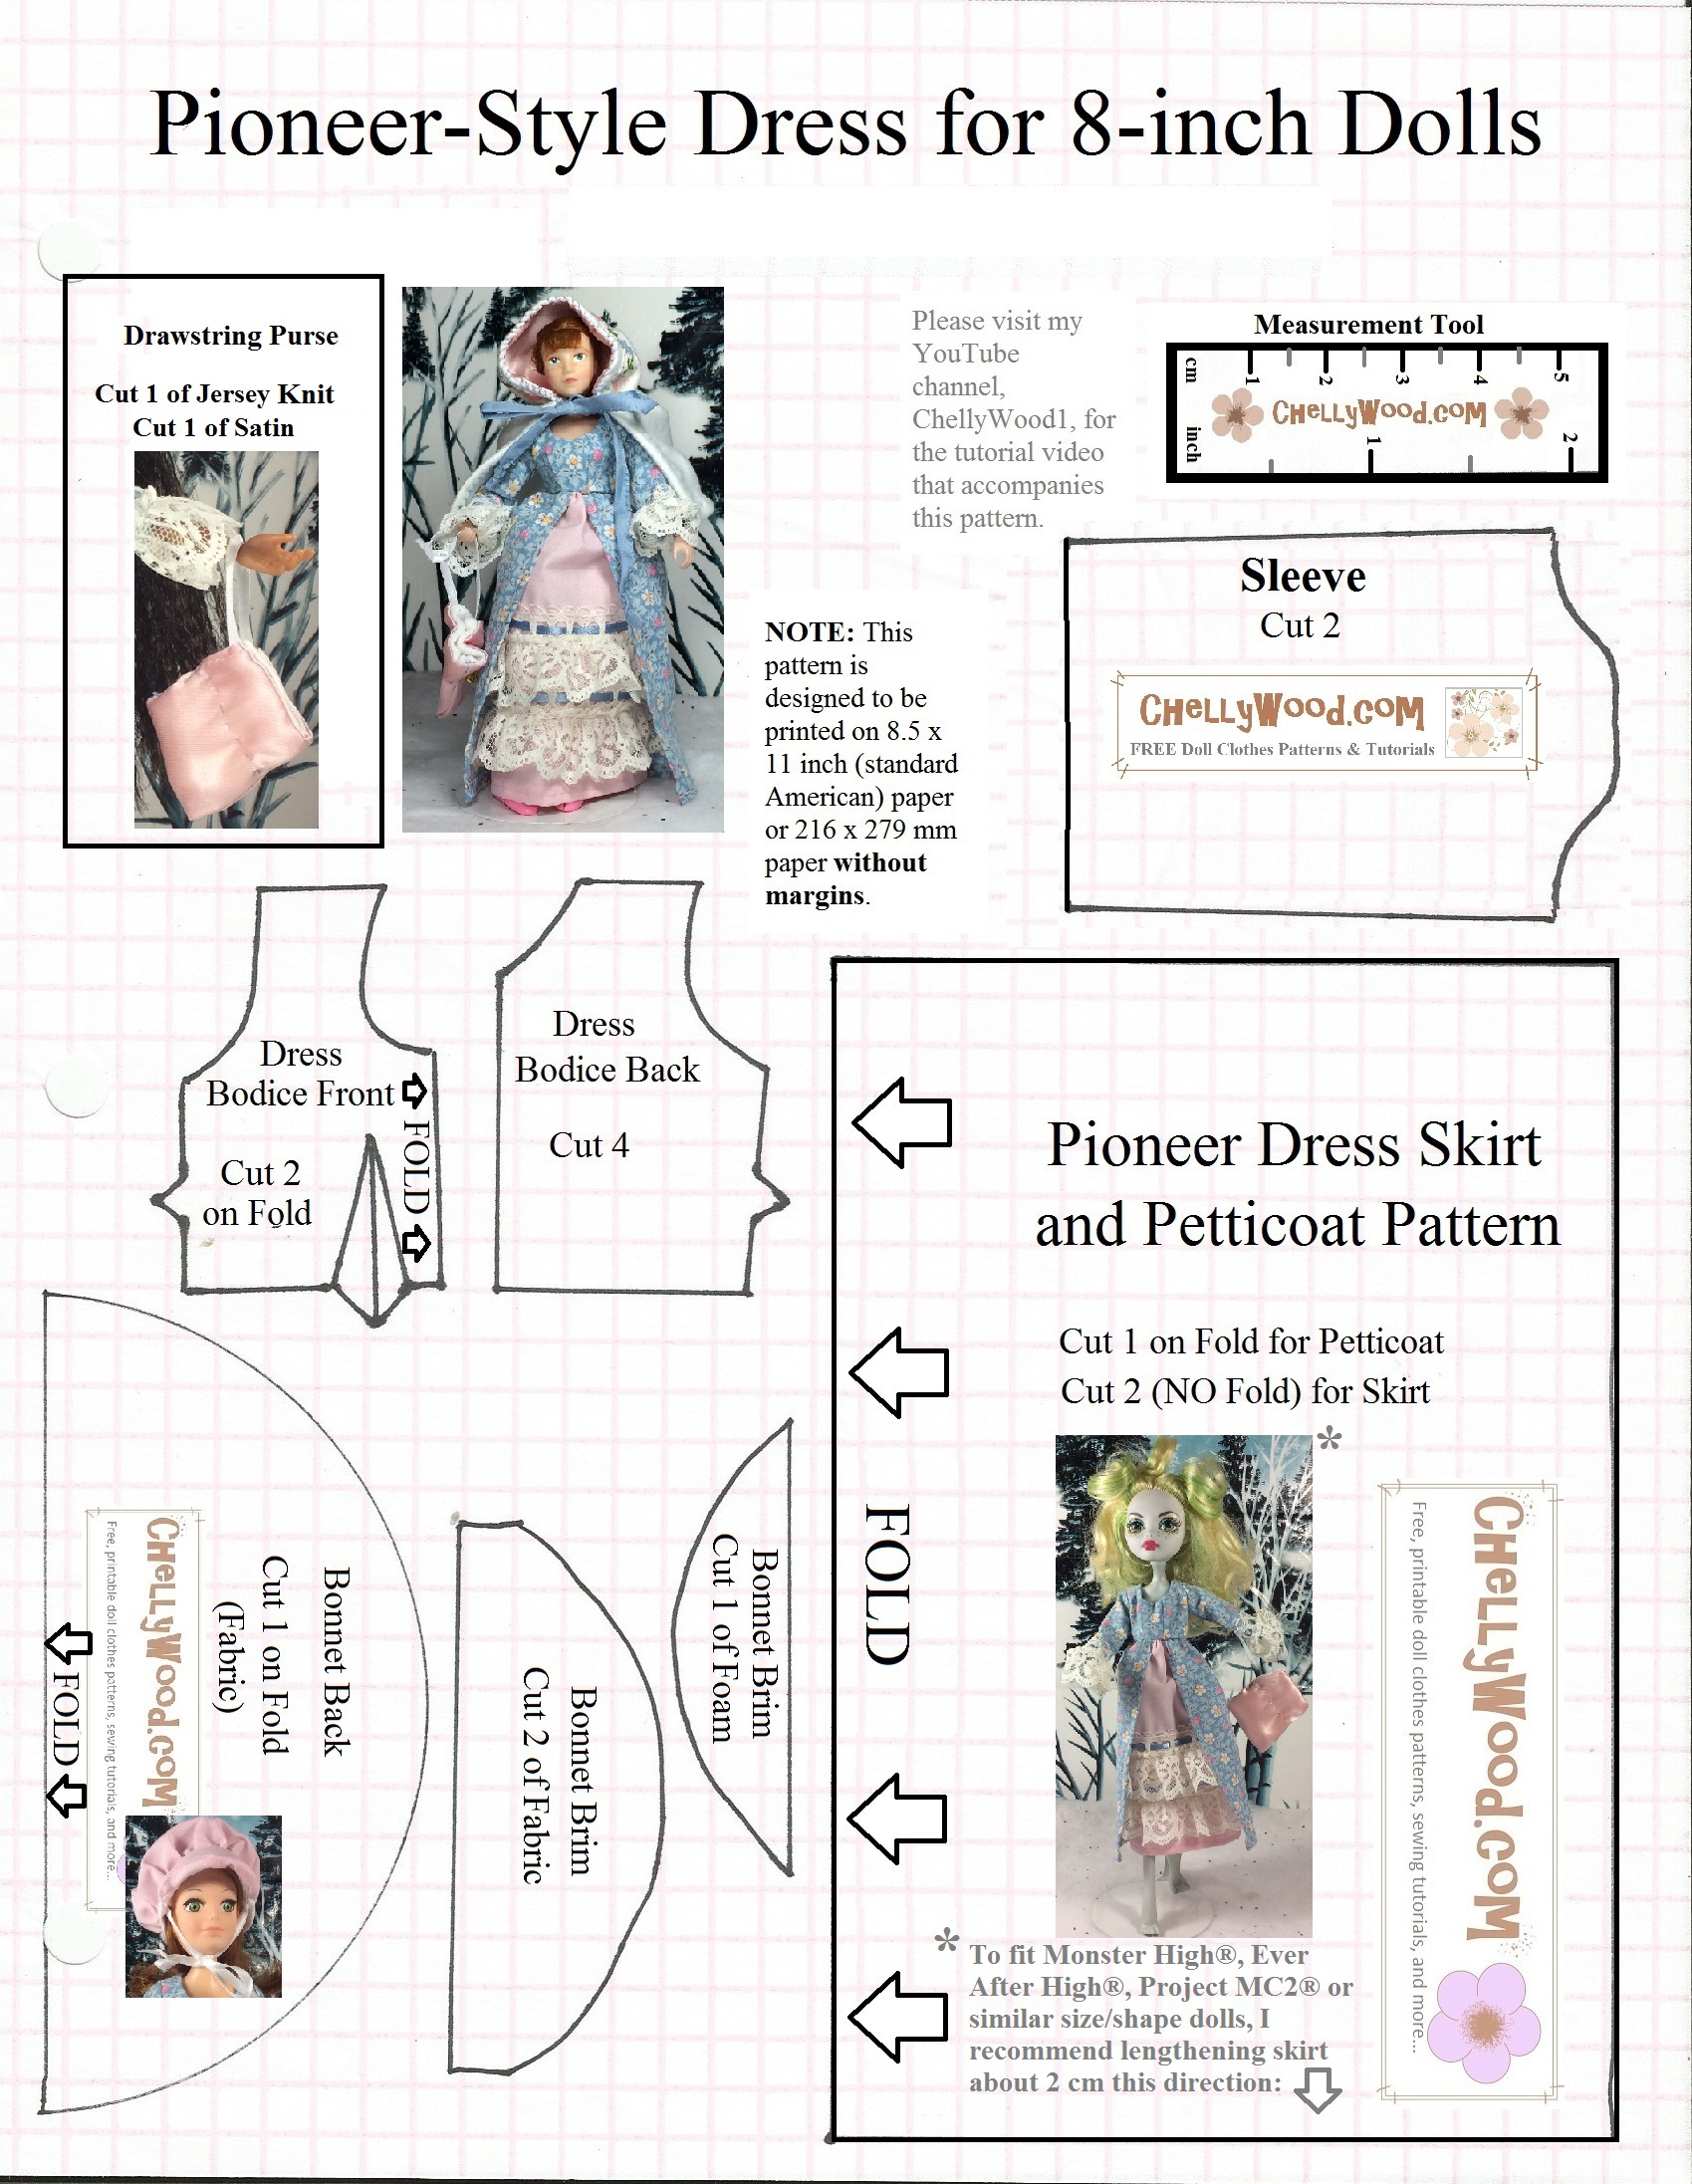 Sewing Printable Free Sign Sew A Pioneer Bonnet For 8 Dolls W This Free Printable Pattern